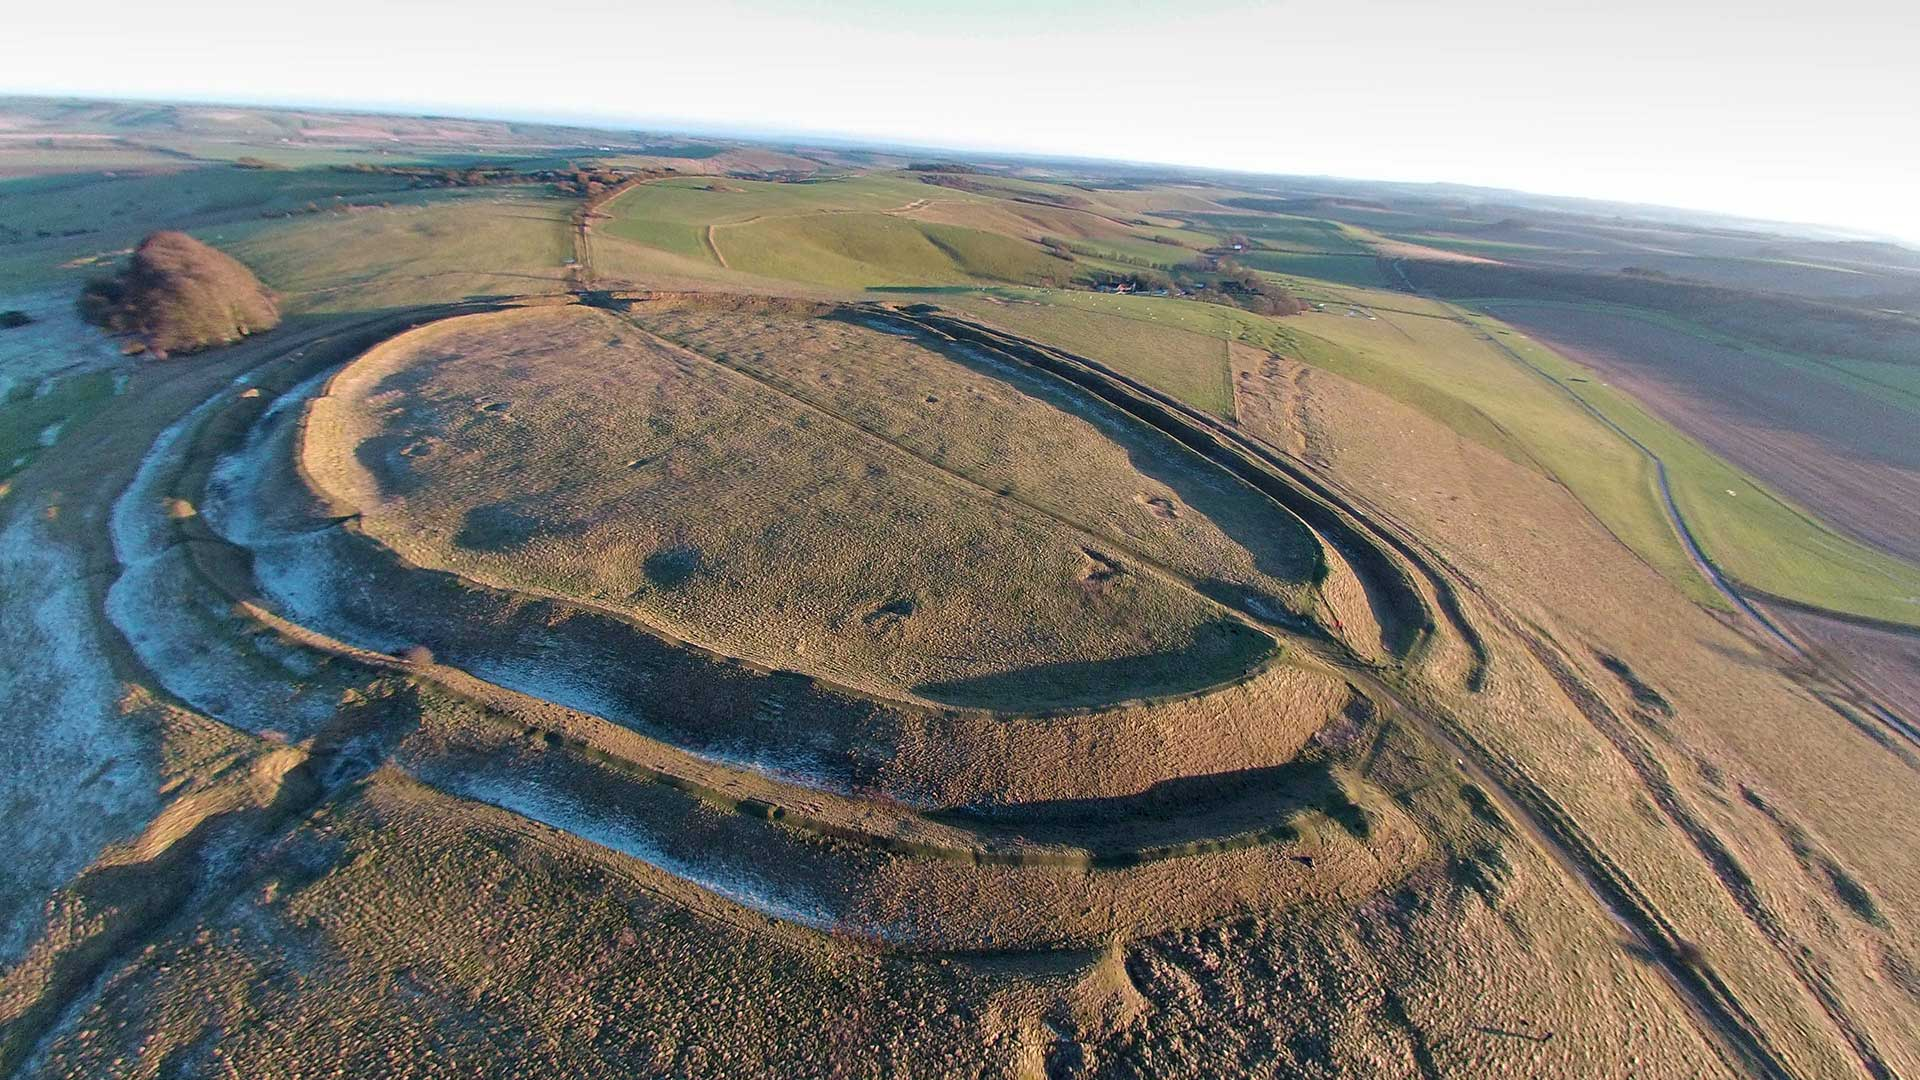 Barbury Hill | Hill forts in the UK